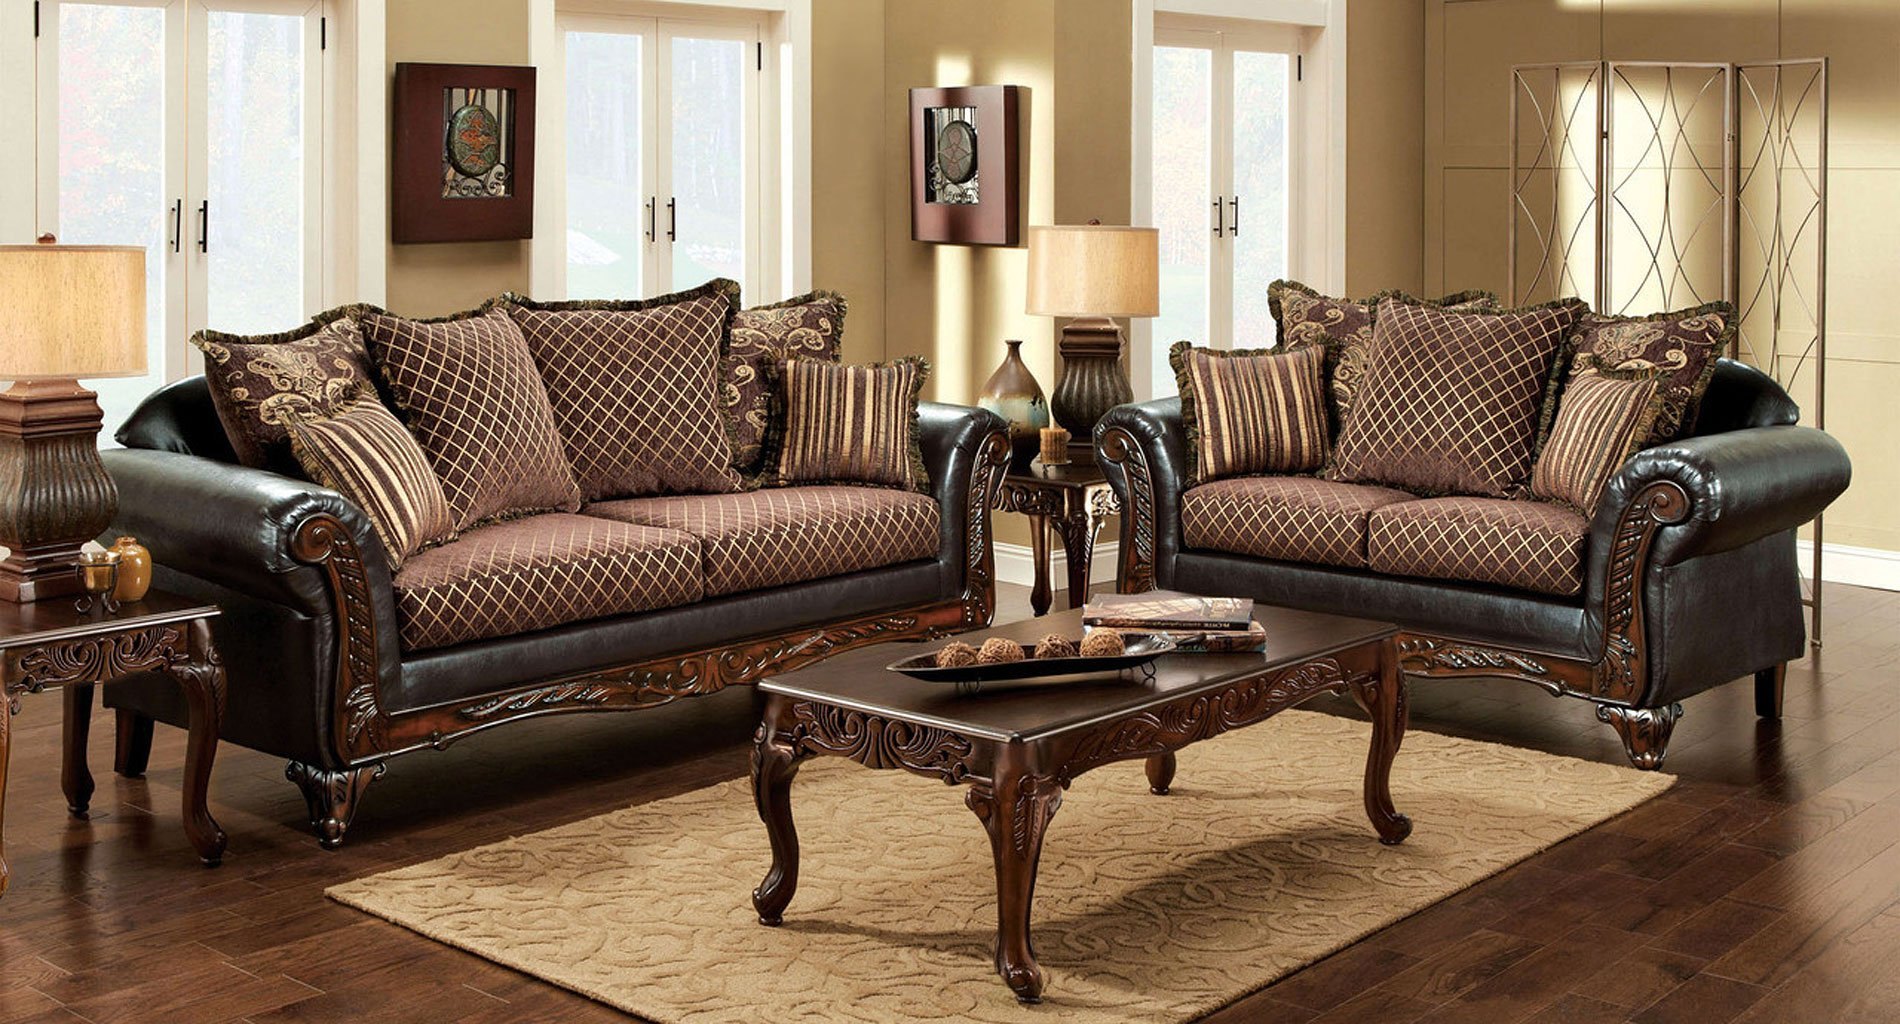 San roque living room set living room sets living room for Sm living room furnitures